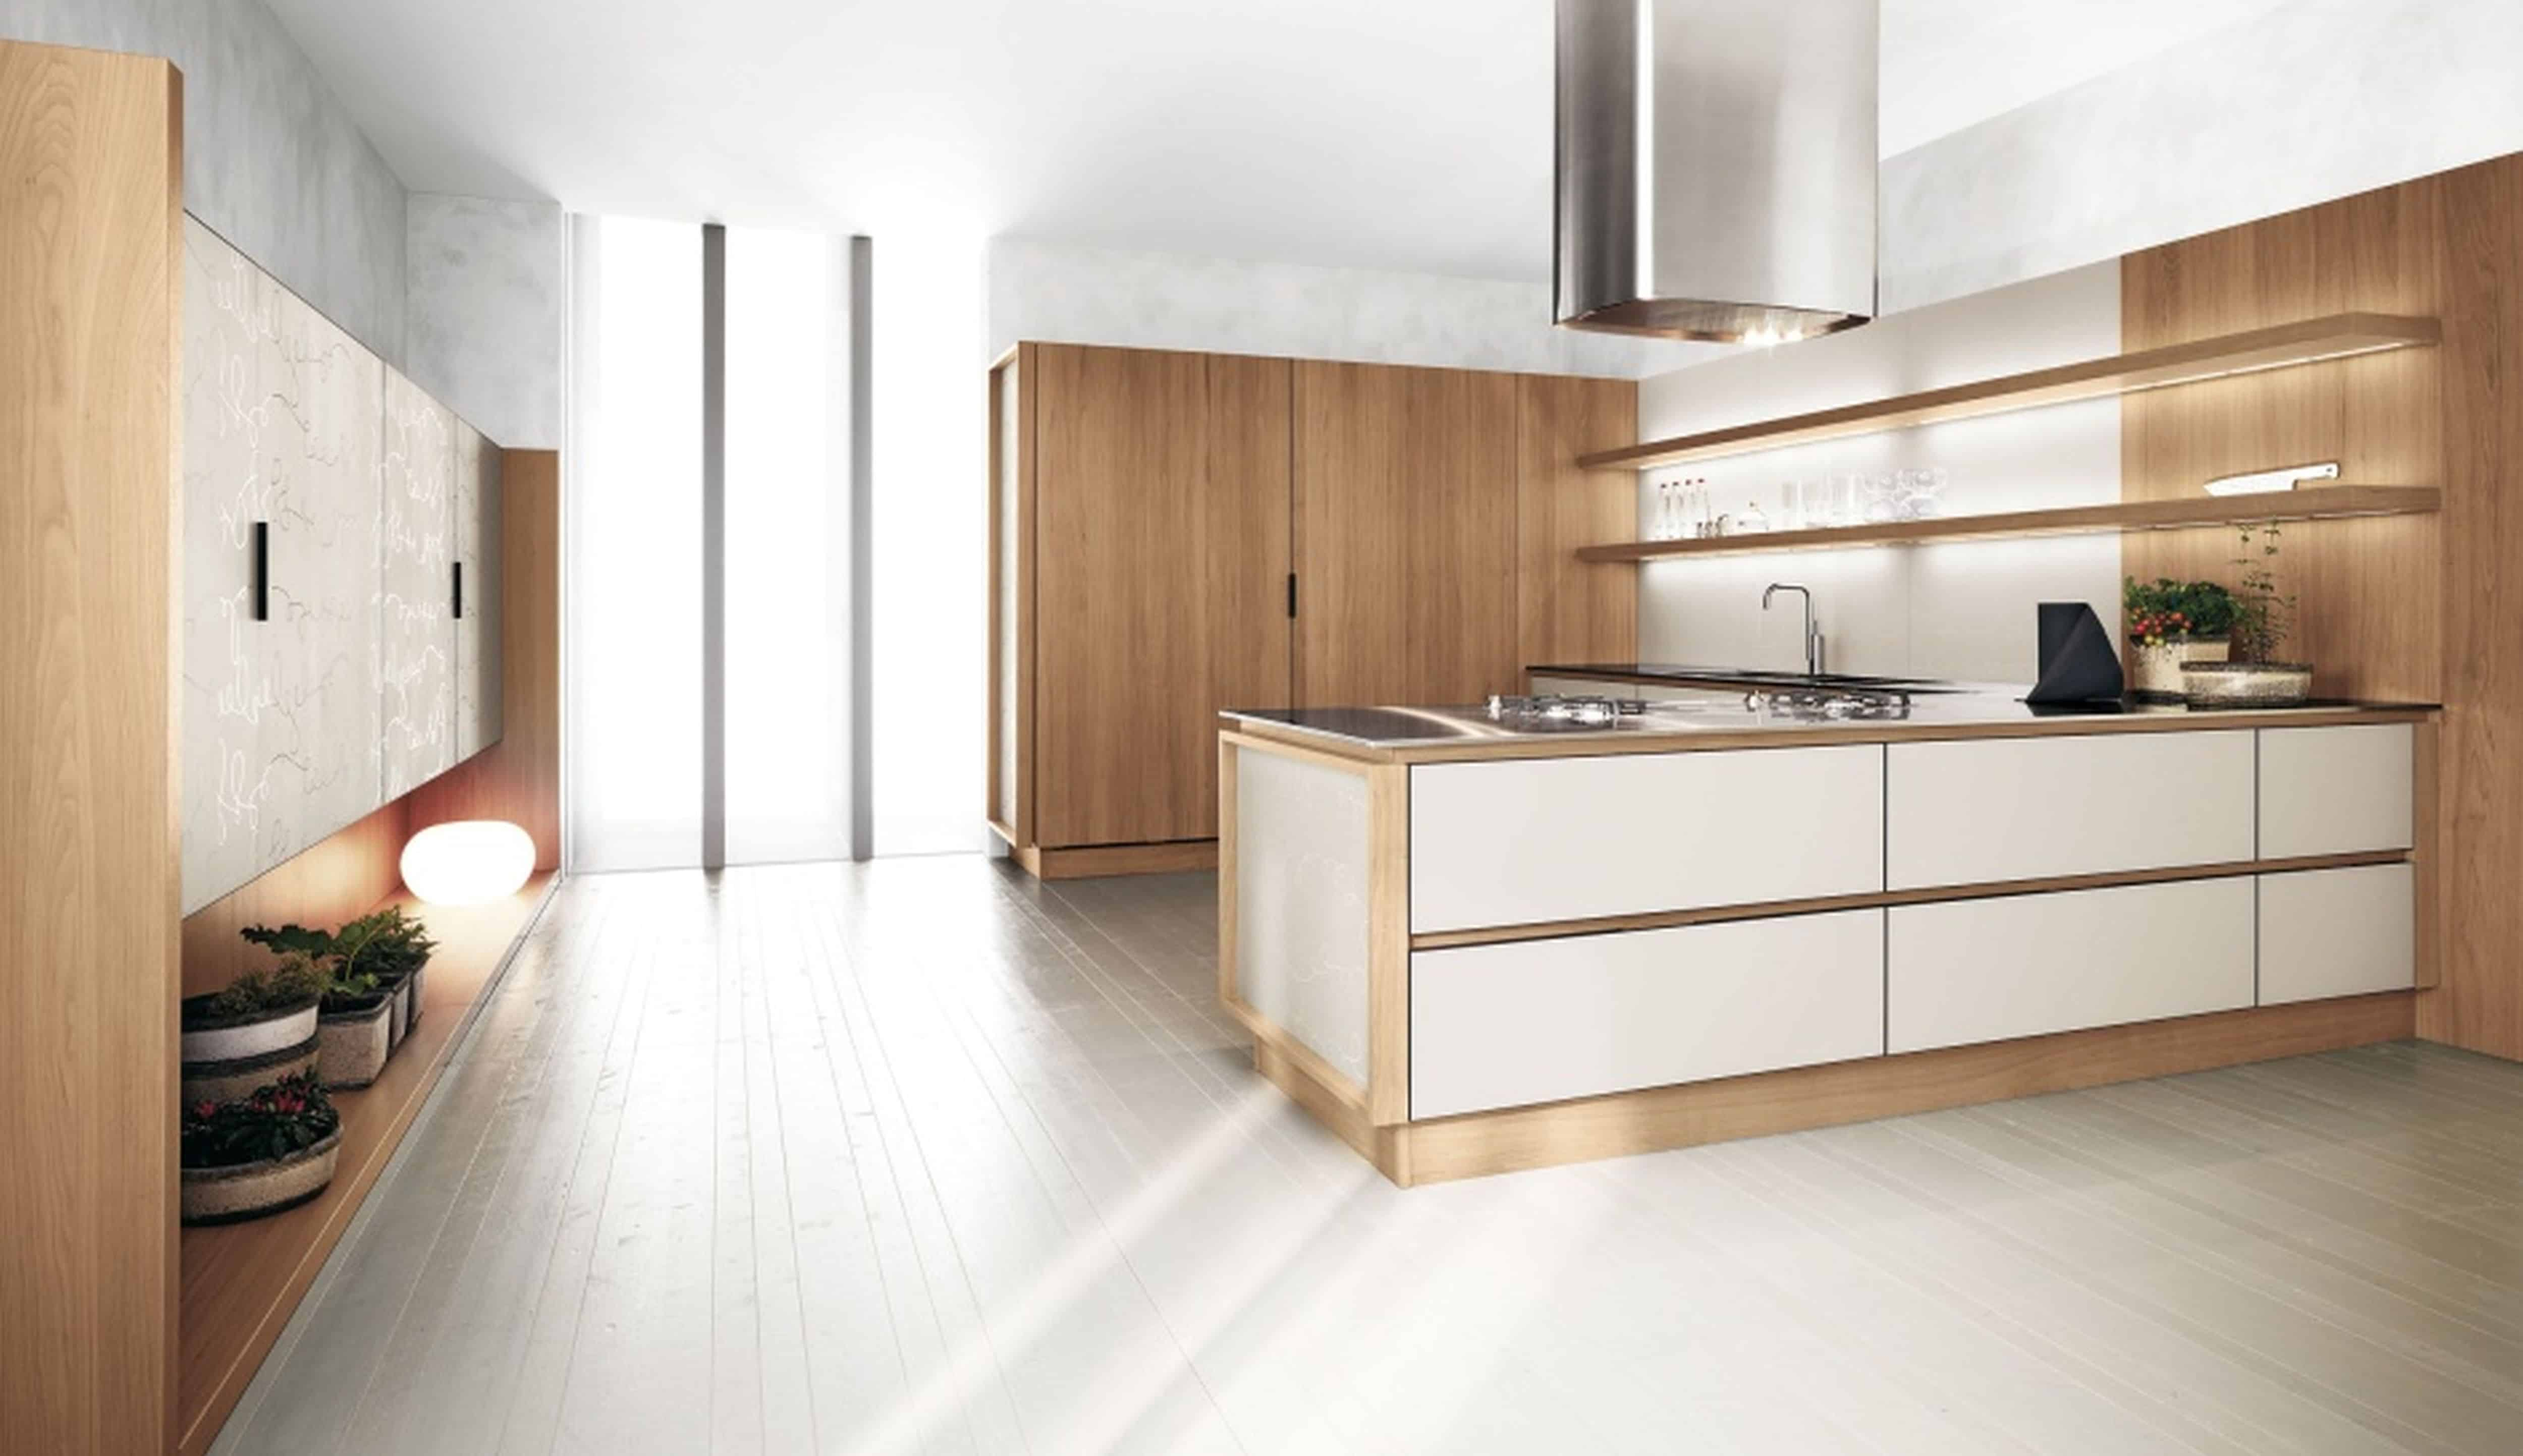 fabulous-white-and-walnut-two-tone-kitchen-cabinets-design-inspirations-equipped-appealing-maple-natural-wood-laminate-flooring-plus-range-hood-in-futuristic-style-with-kitchen-cabinets-refacing-and-i